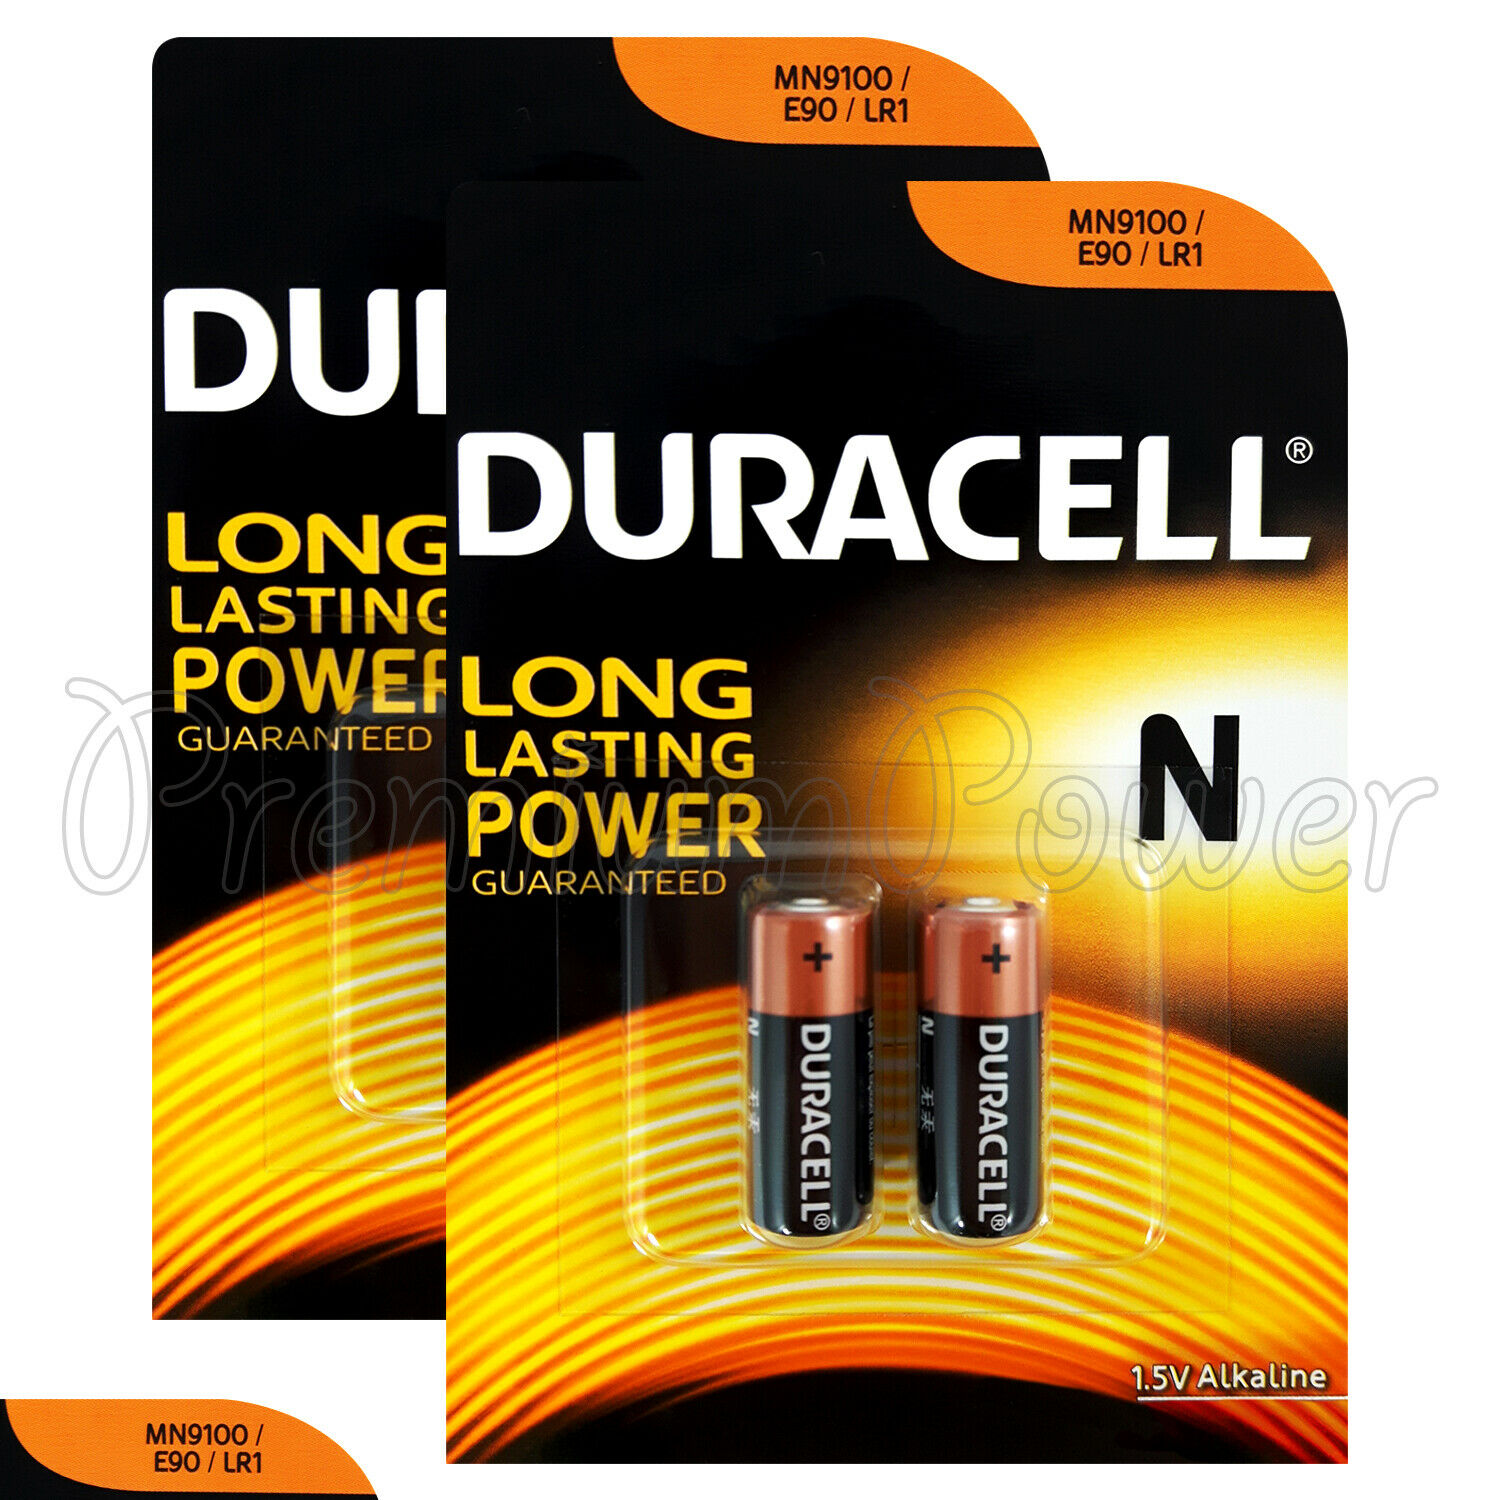 4 X Duracell Alkaline N Lr1 15v Batteries Mn9100 E90 Am5 2 In Pack Energizer E92 Aaa Bp 1 Of 1free Shipping